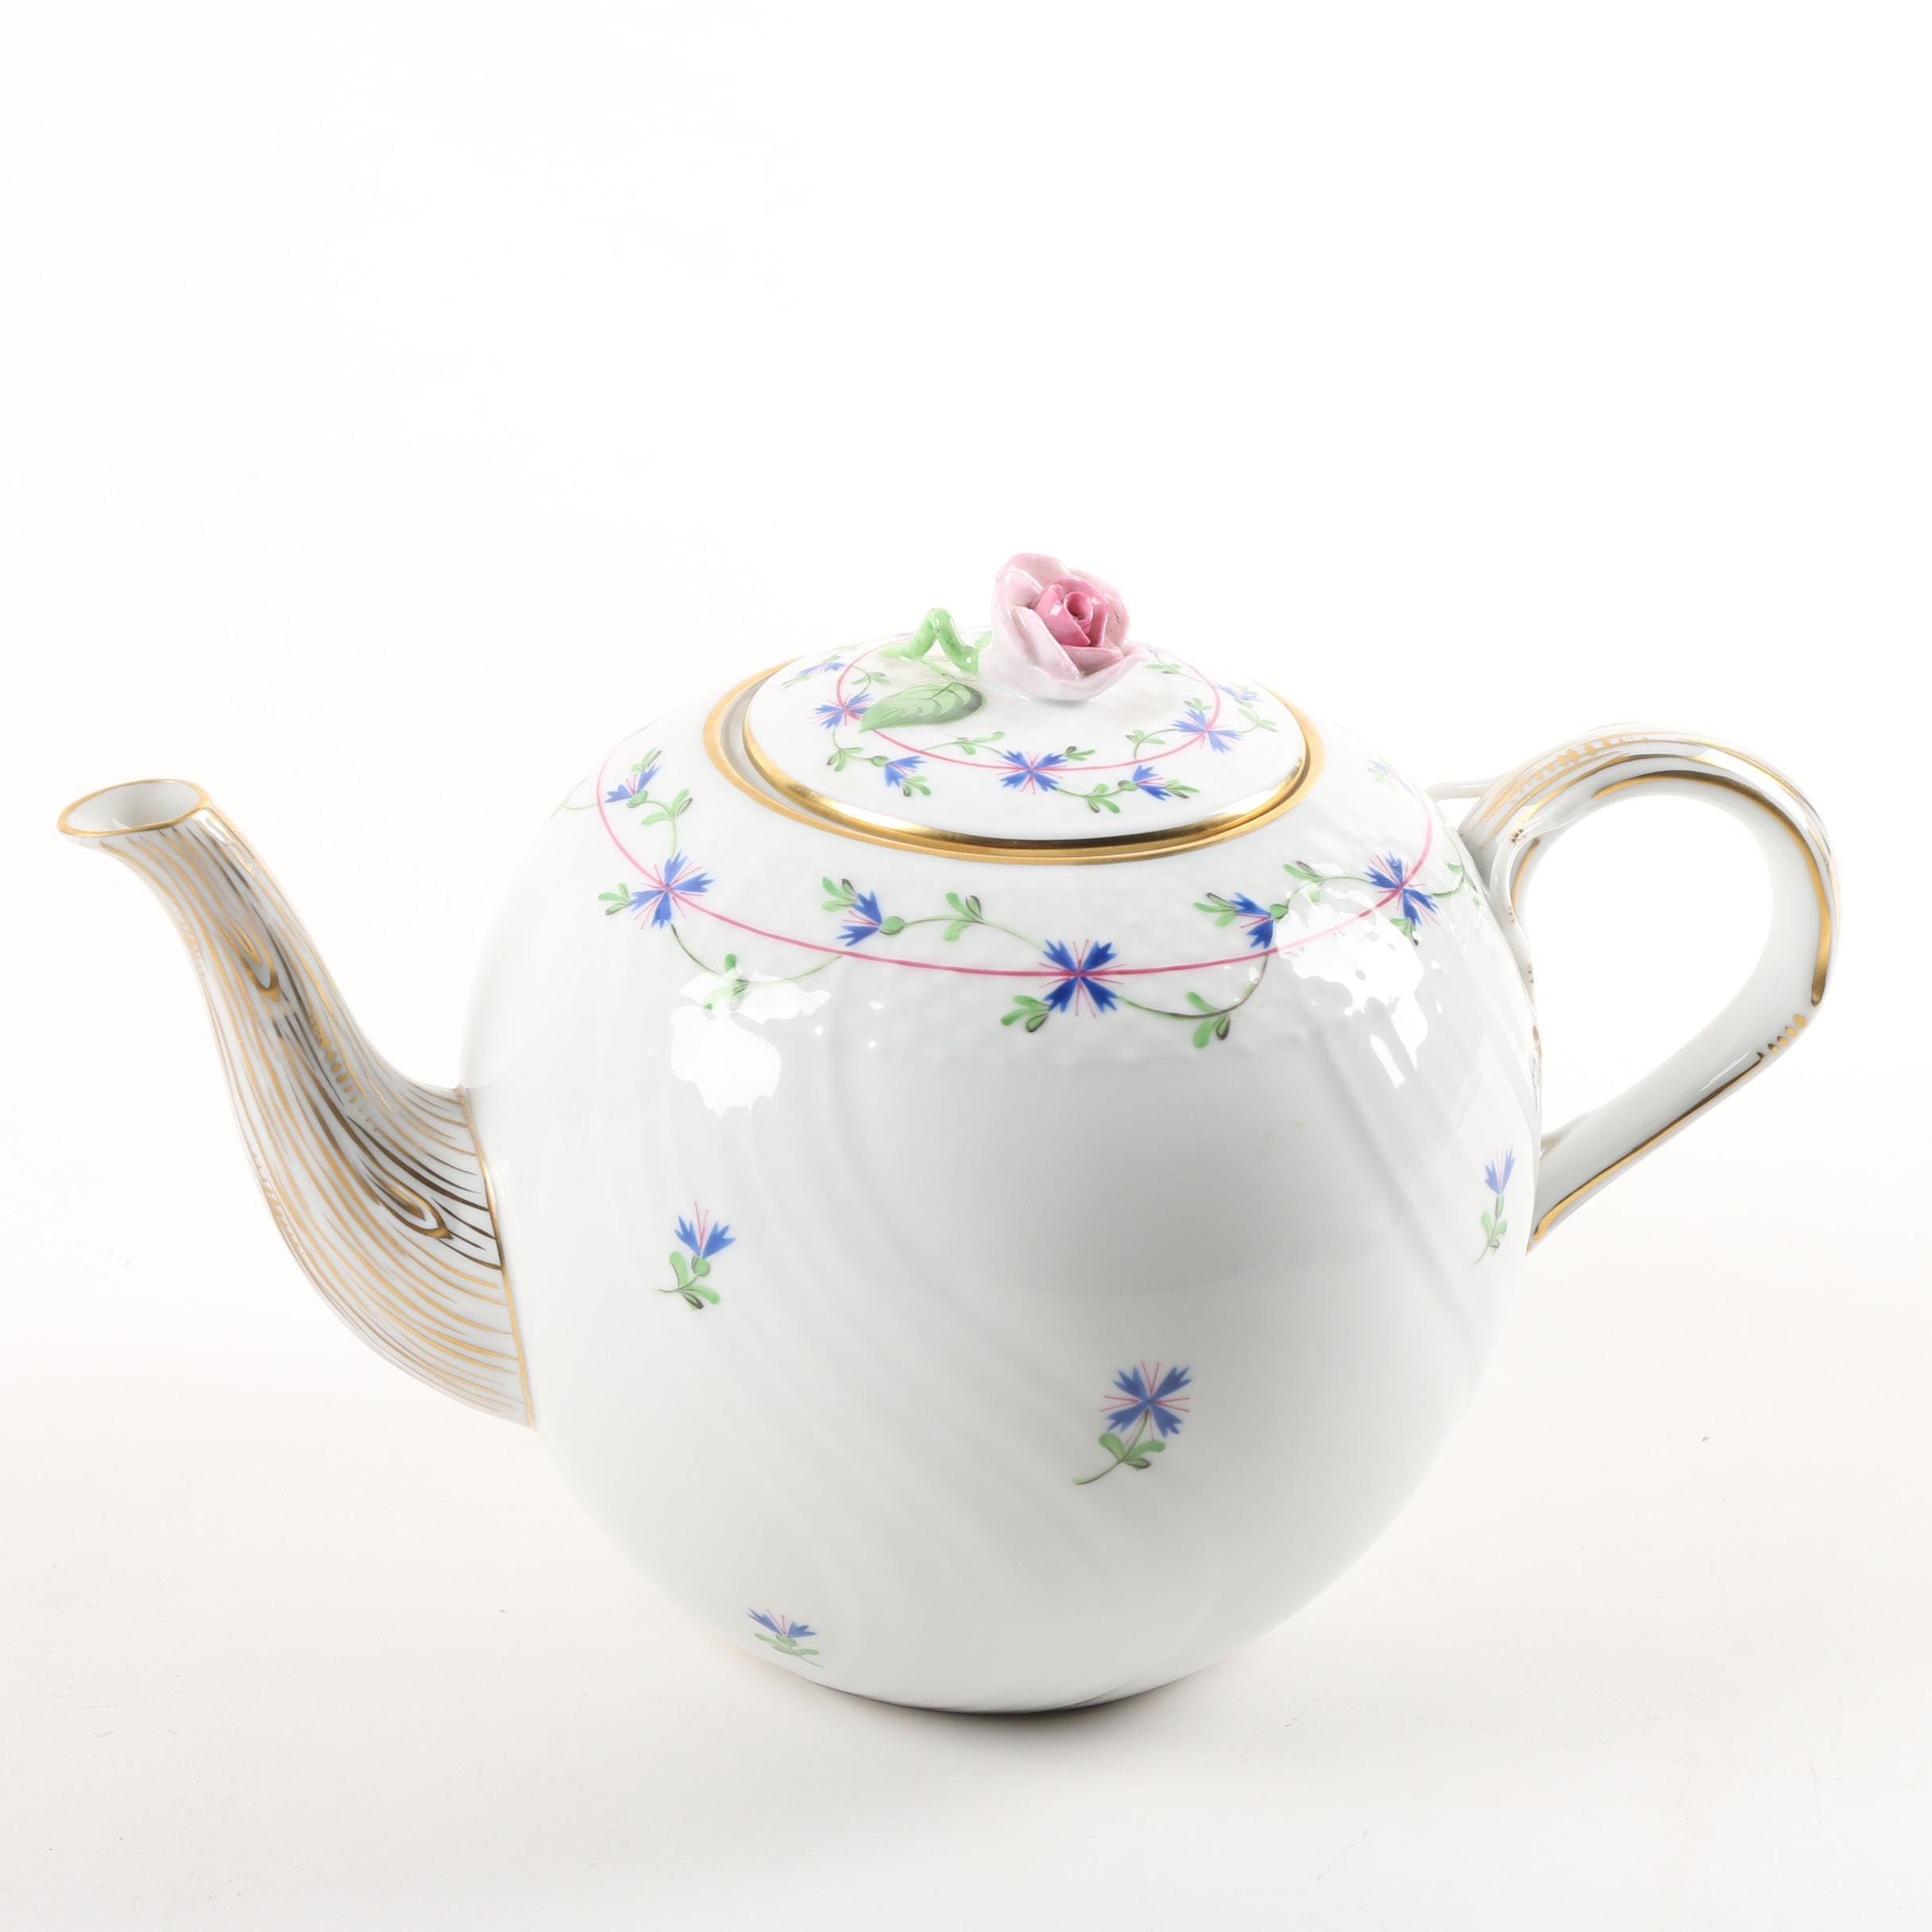 "Herend Hand-Painted ""Blue Garland""Porcelain Teapot"